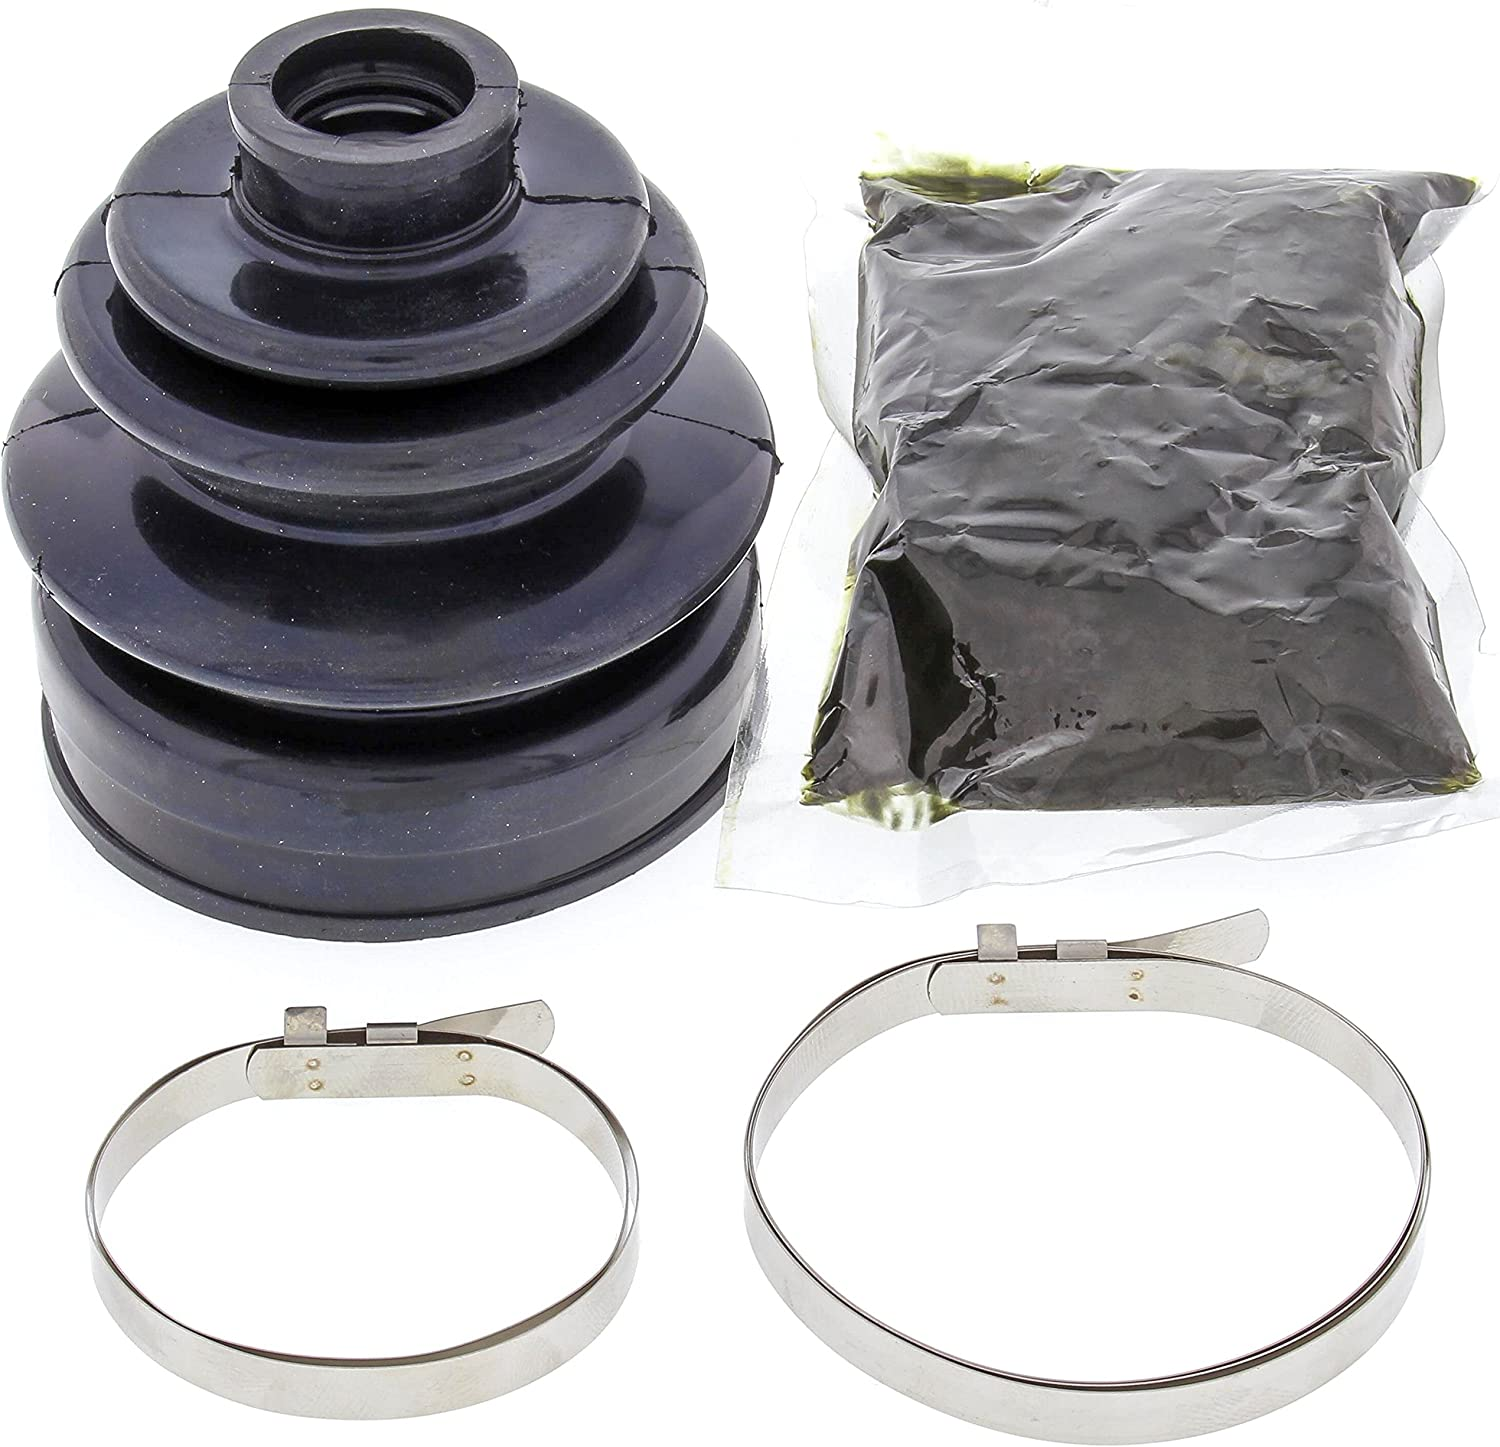 CV Boot Kit Kawasaki 750 Brute Force 2005-2007 Front Inner and Outer Race-Driven